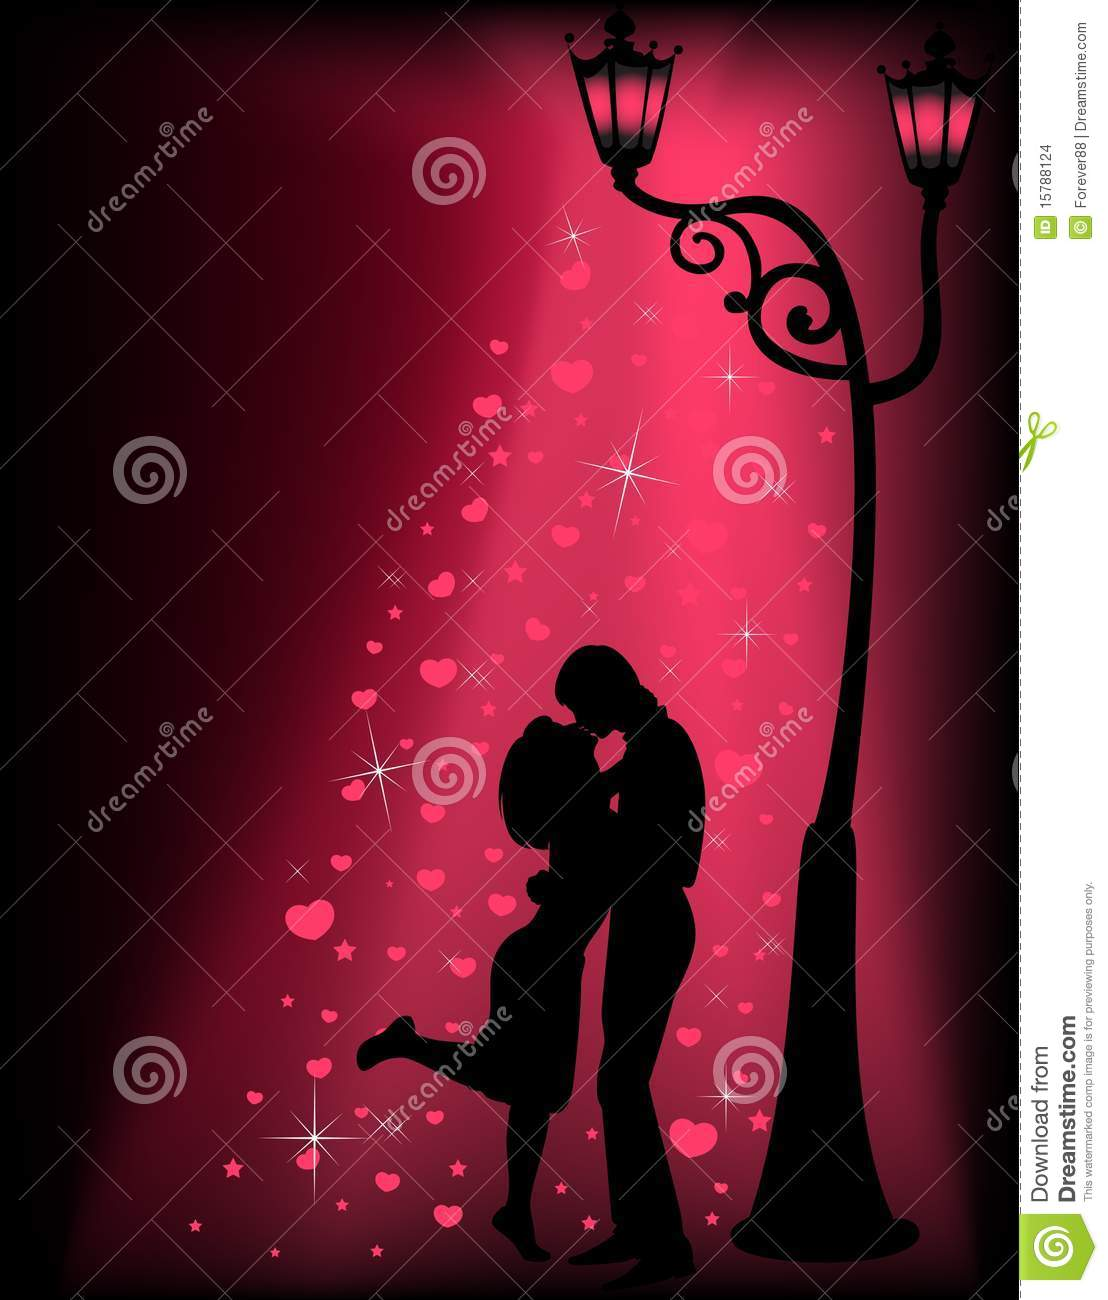 Silhouettes of two lovers stock images image 15788124 for 2 lovers pic